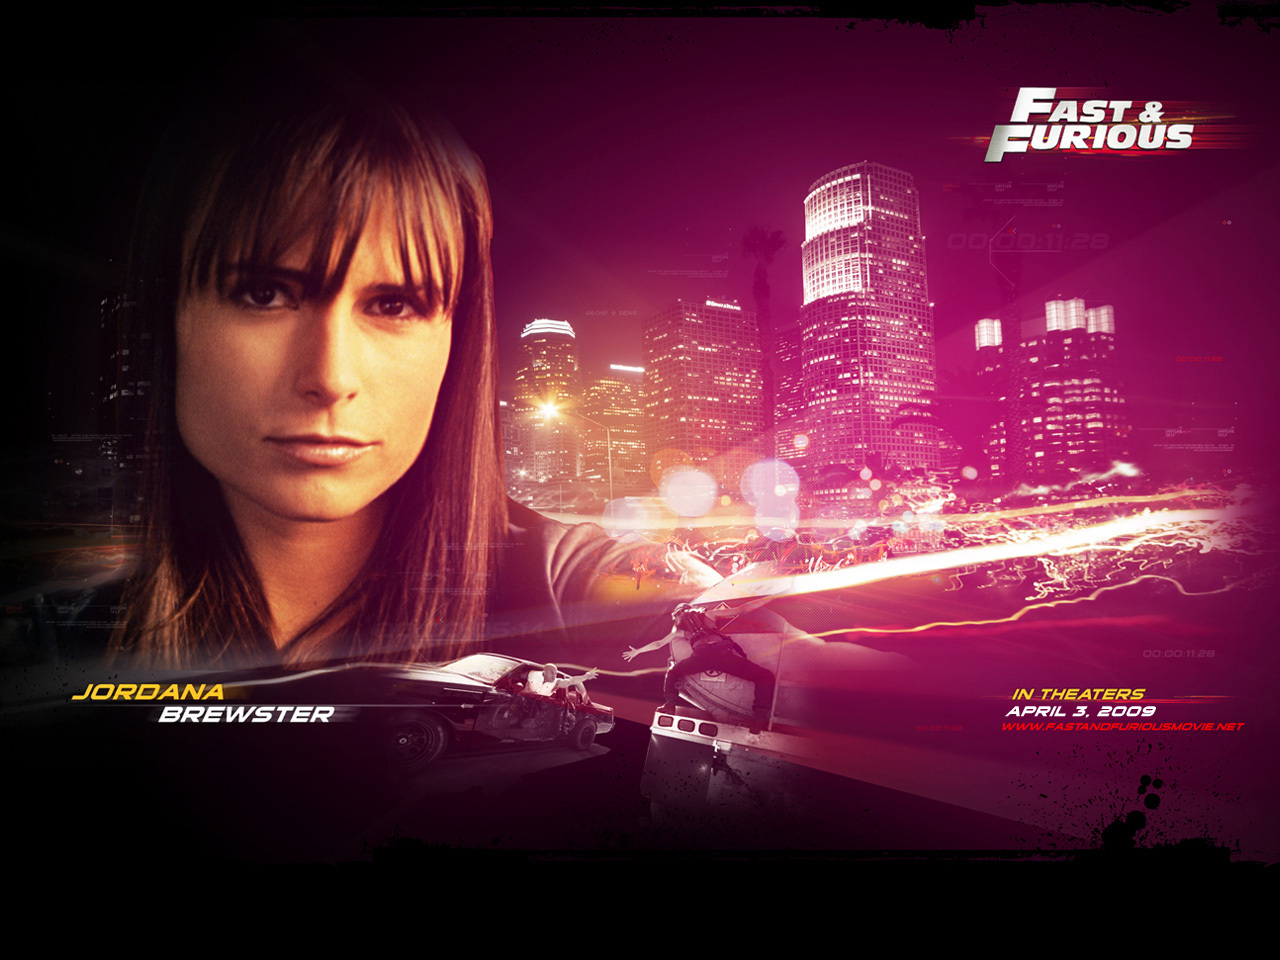 http://images2.fanpop.com/images/photos/3800000/Mia-the-fast-and-furious-4-3803297-1280-960.jpg